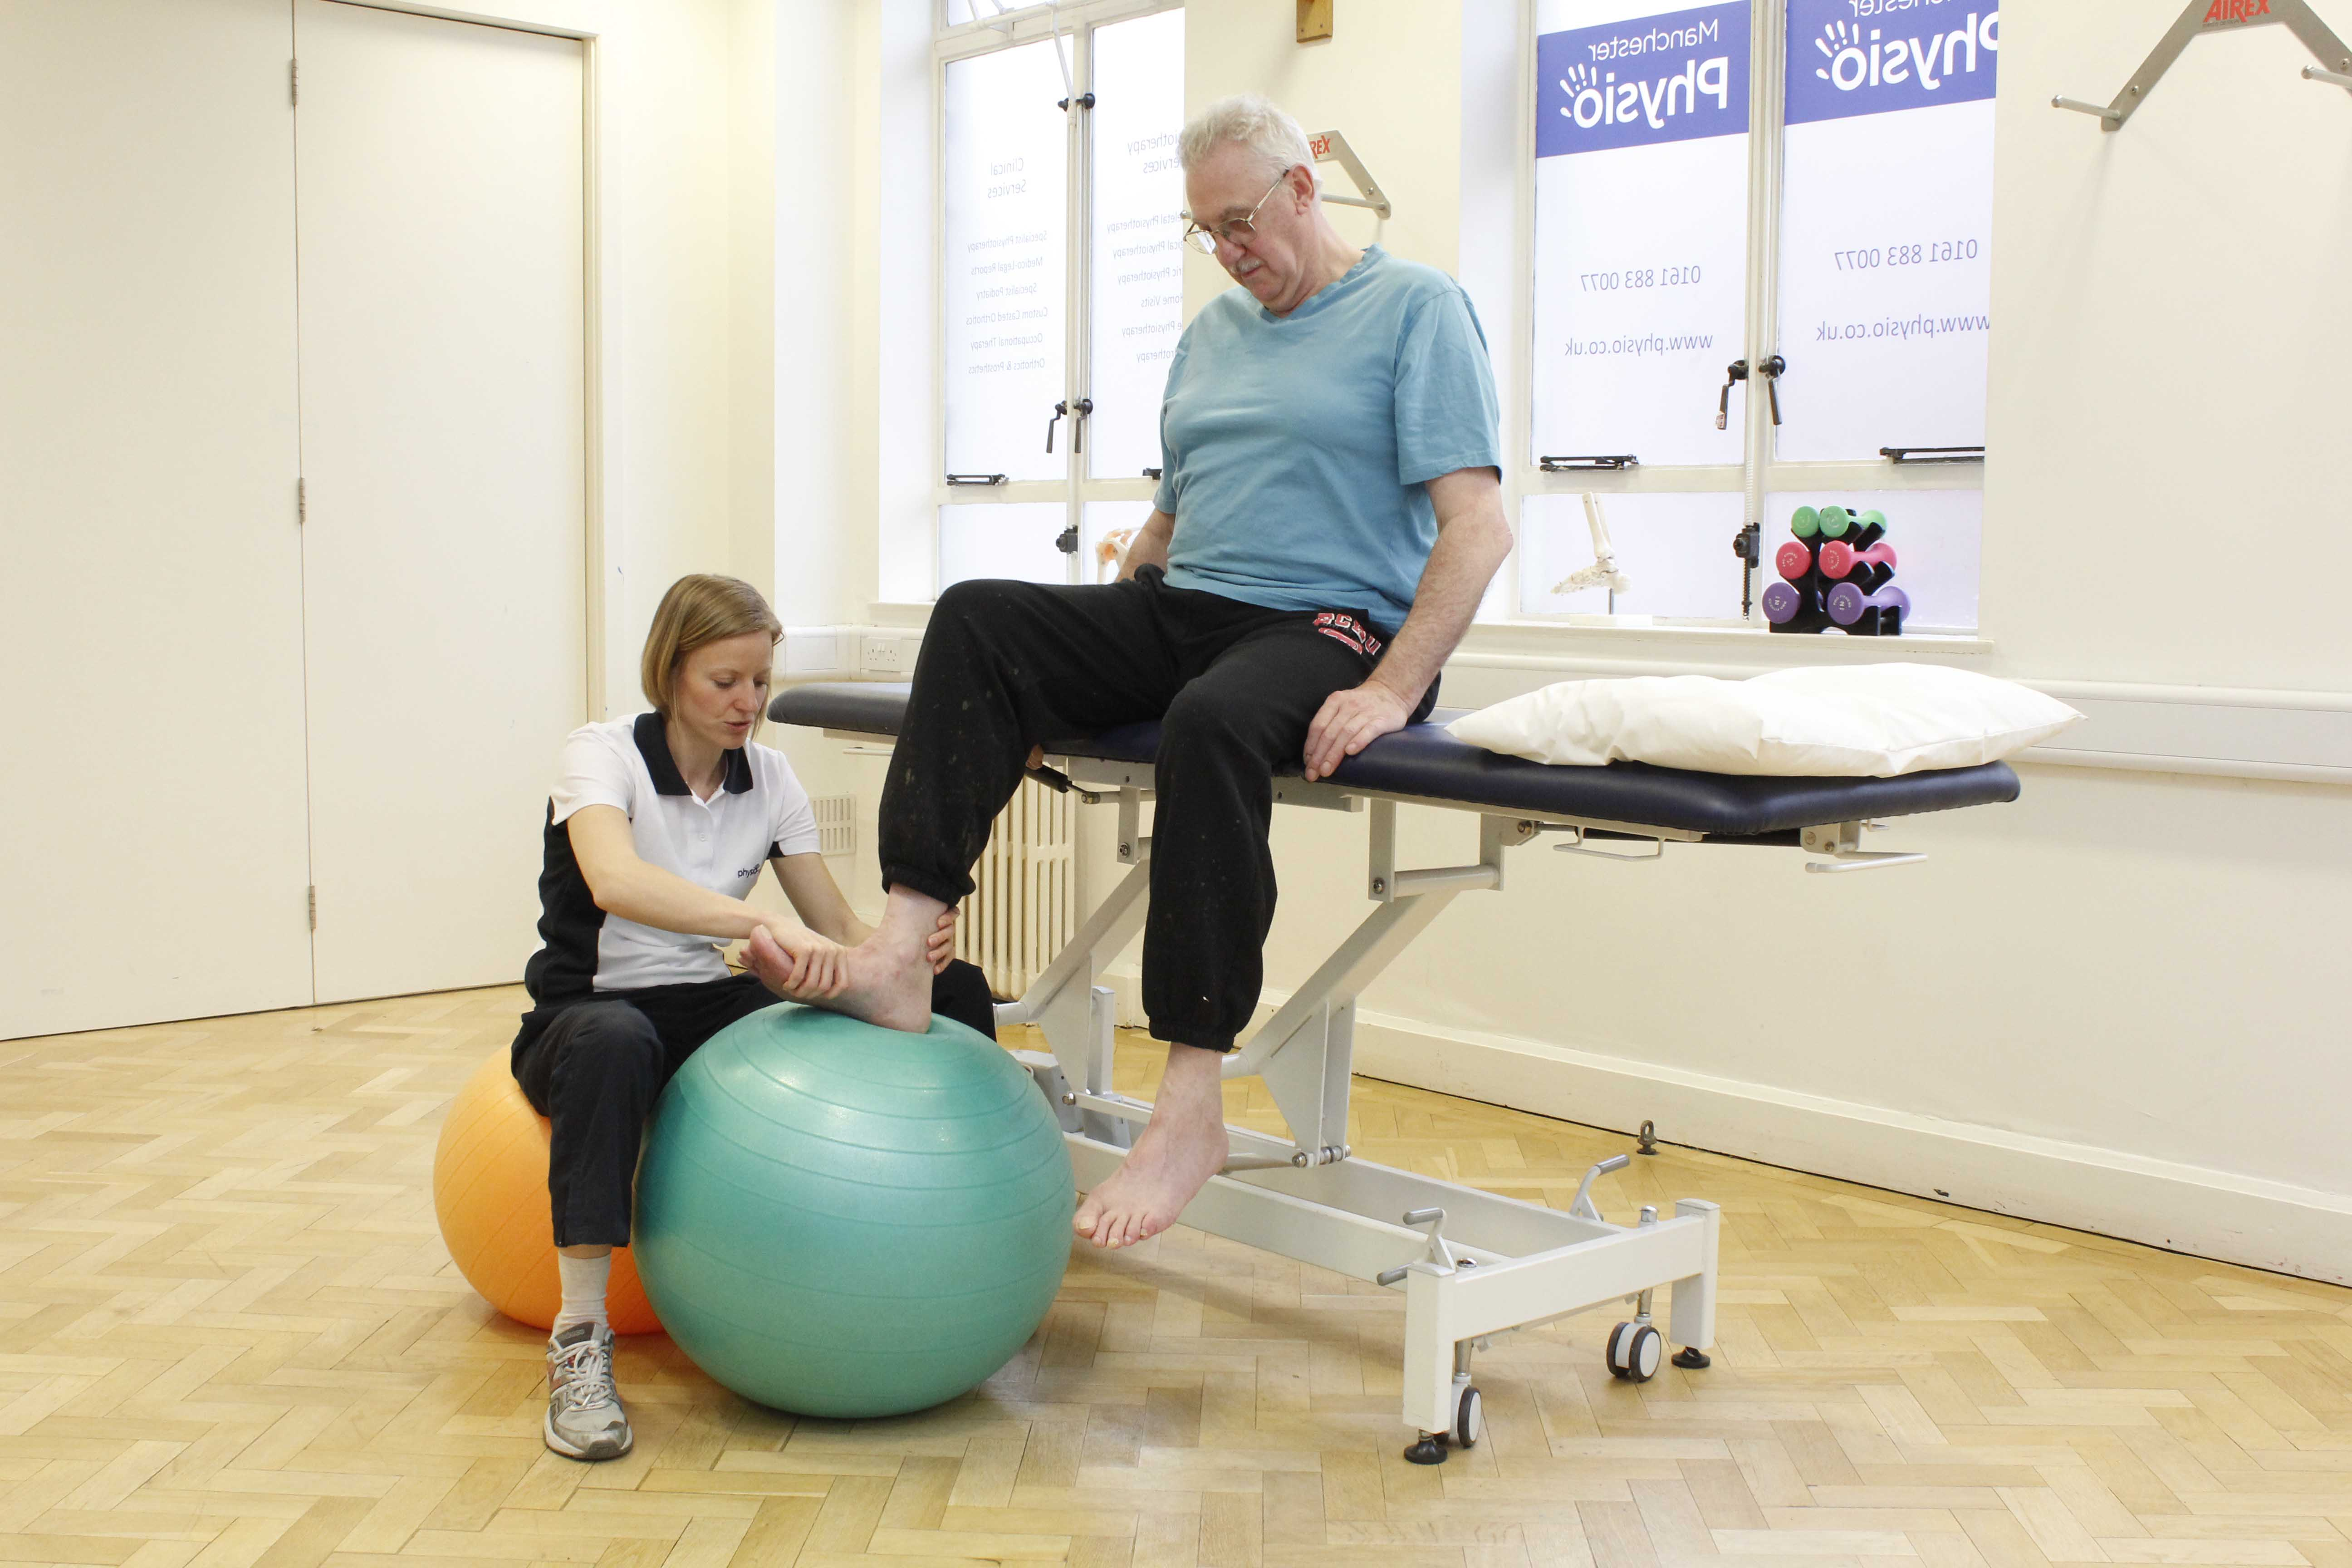 Stretches and mobilisations of the knee and ankle to relieve stiffness and pain